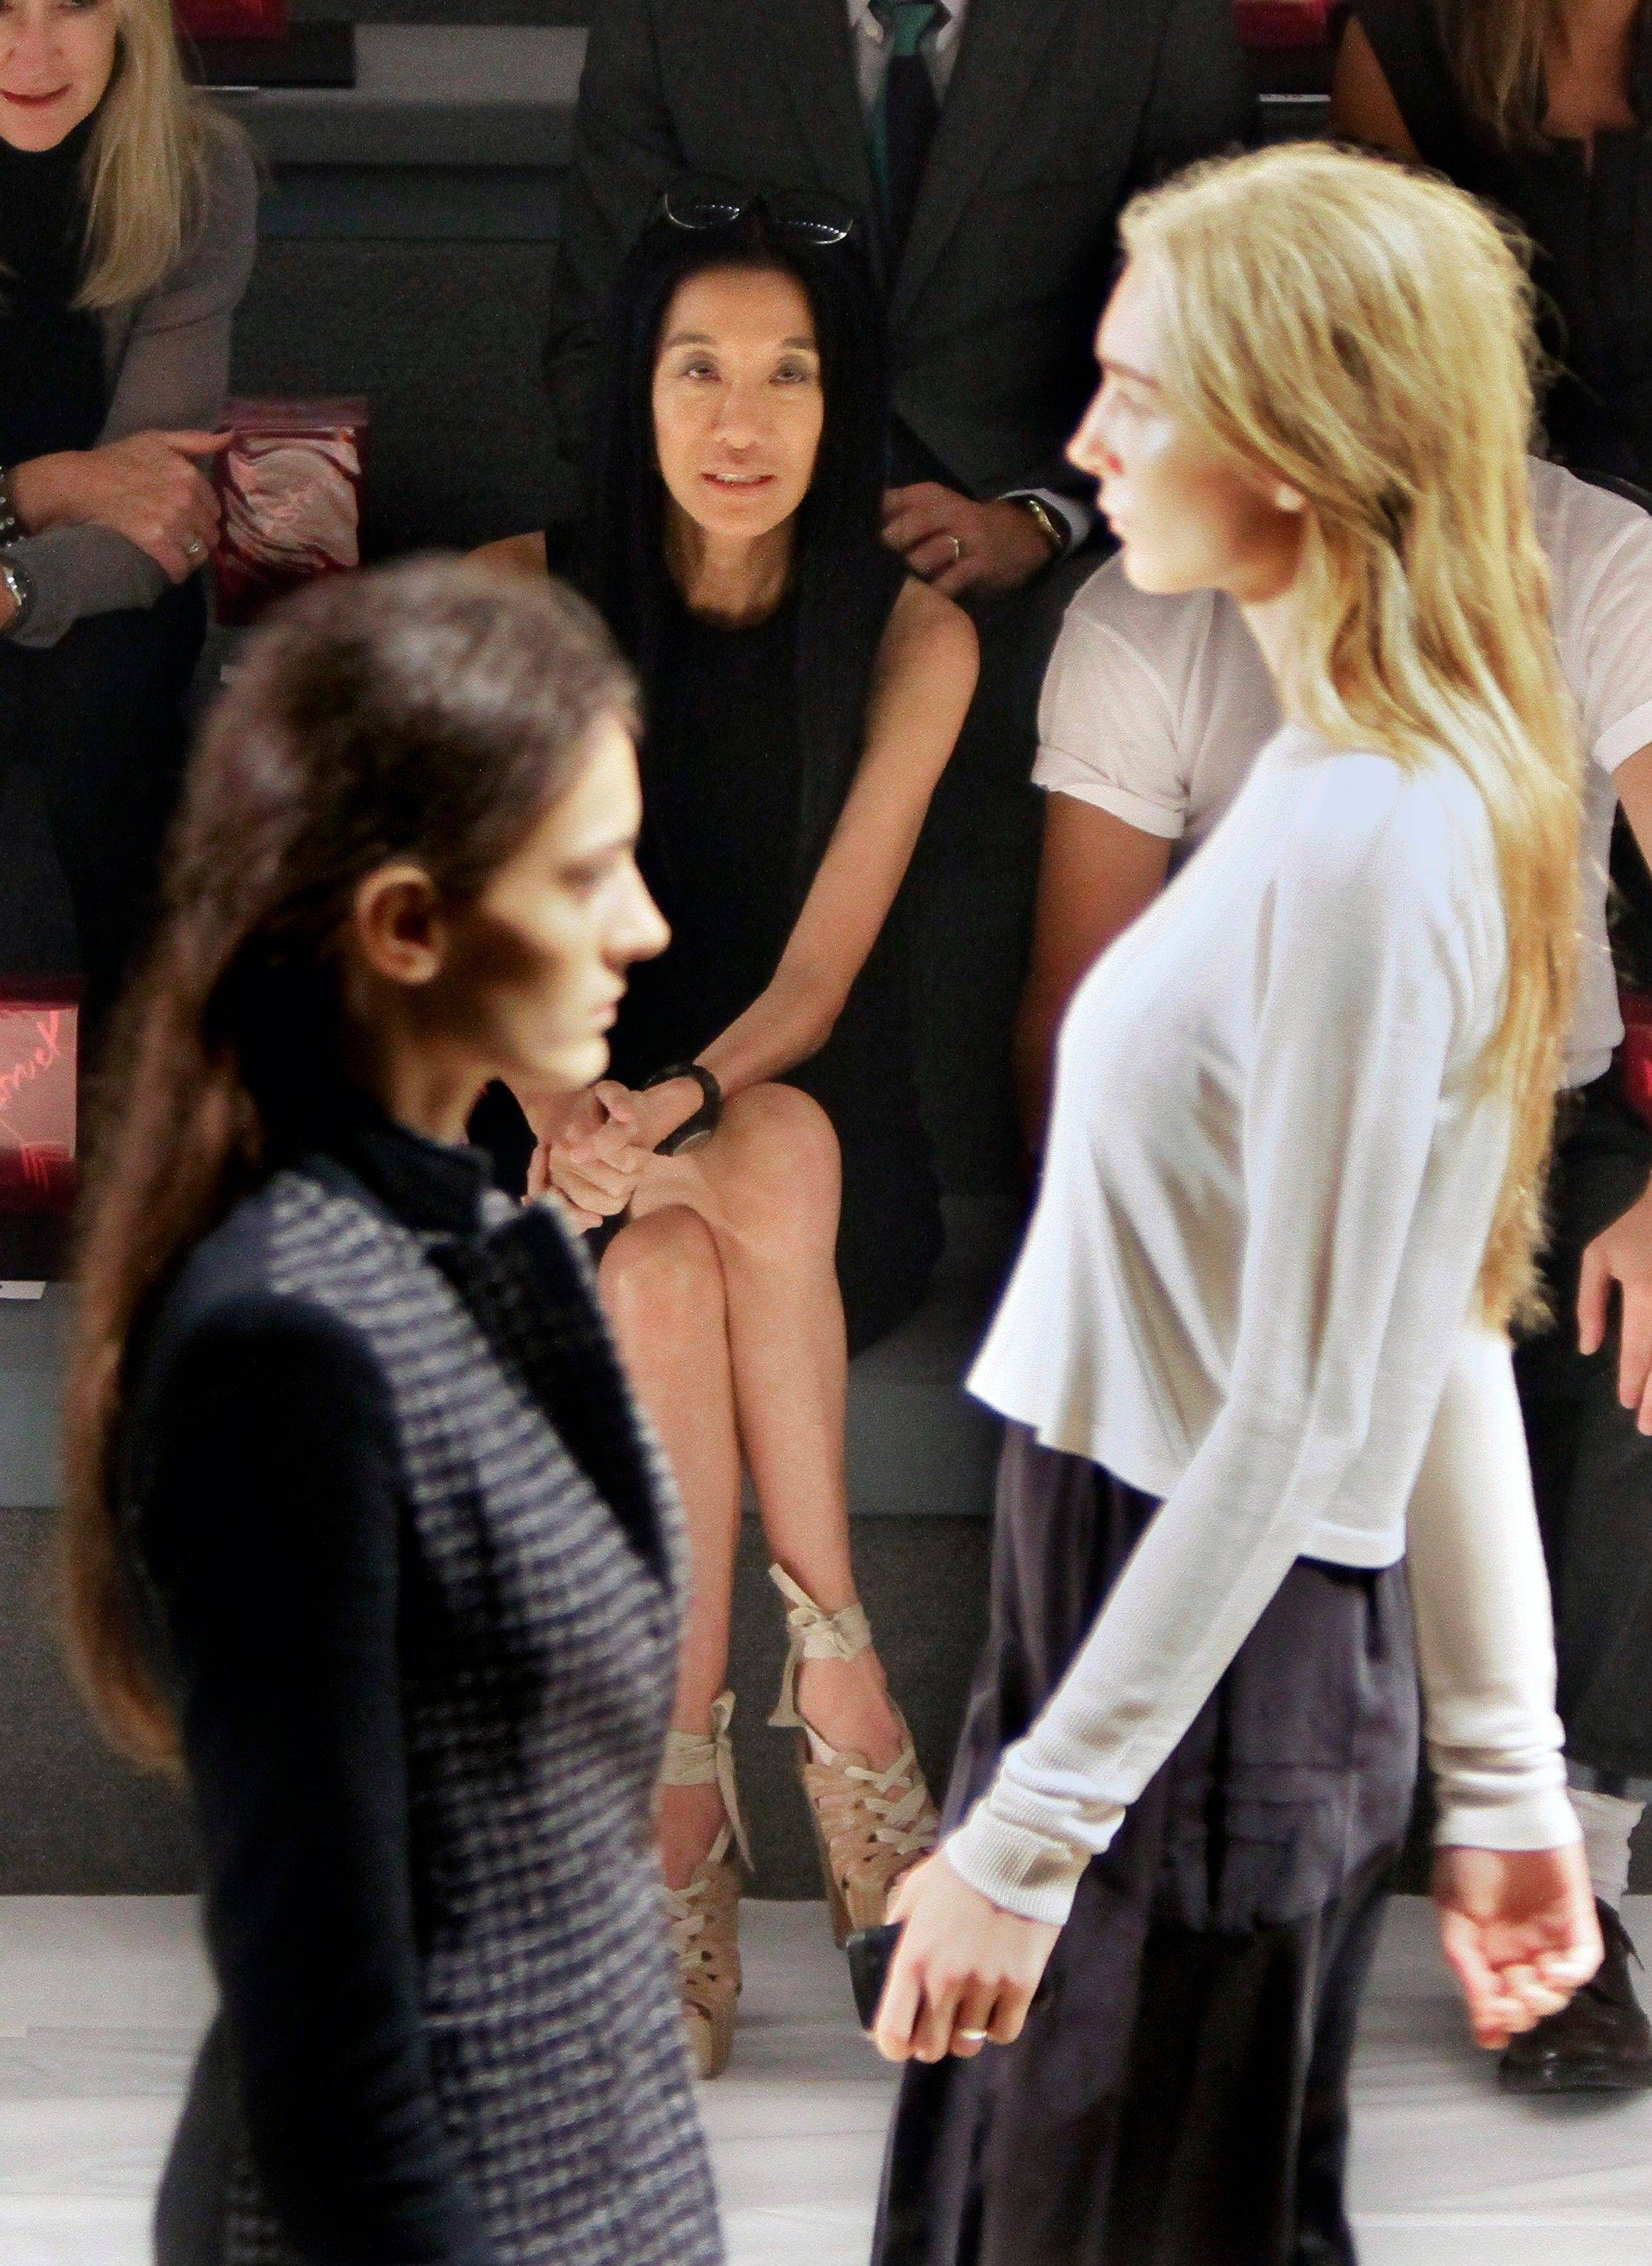 Fashion designer Vera Wang, center, rehearses models for the presentation of her Spring 2012 collection on Tuesday, Sept. 13, 2011, during Fashion Week in New York.